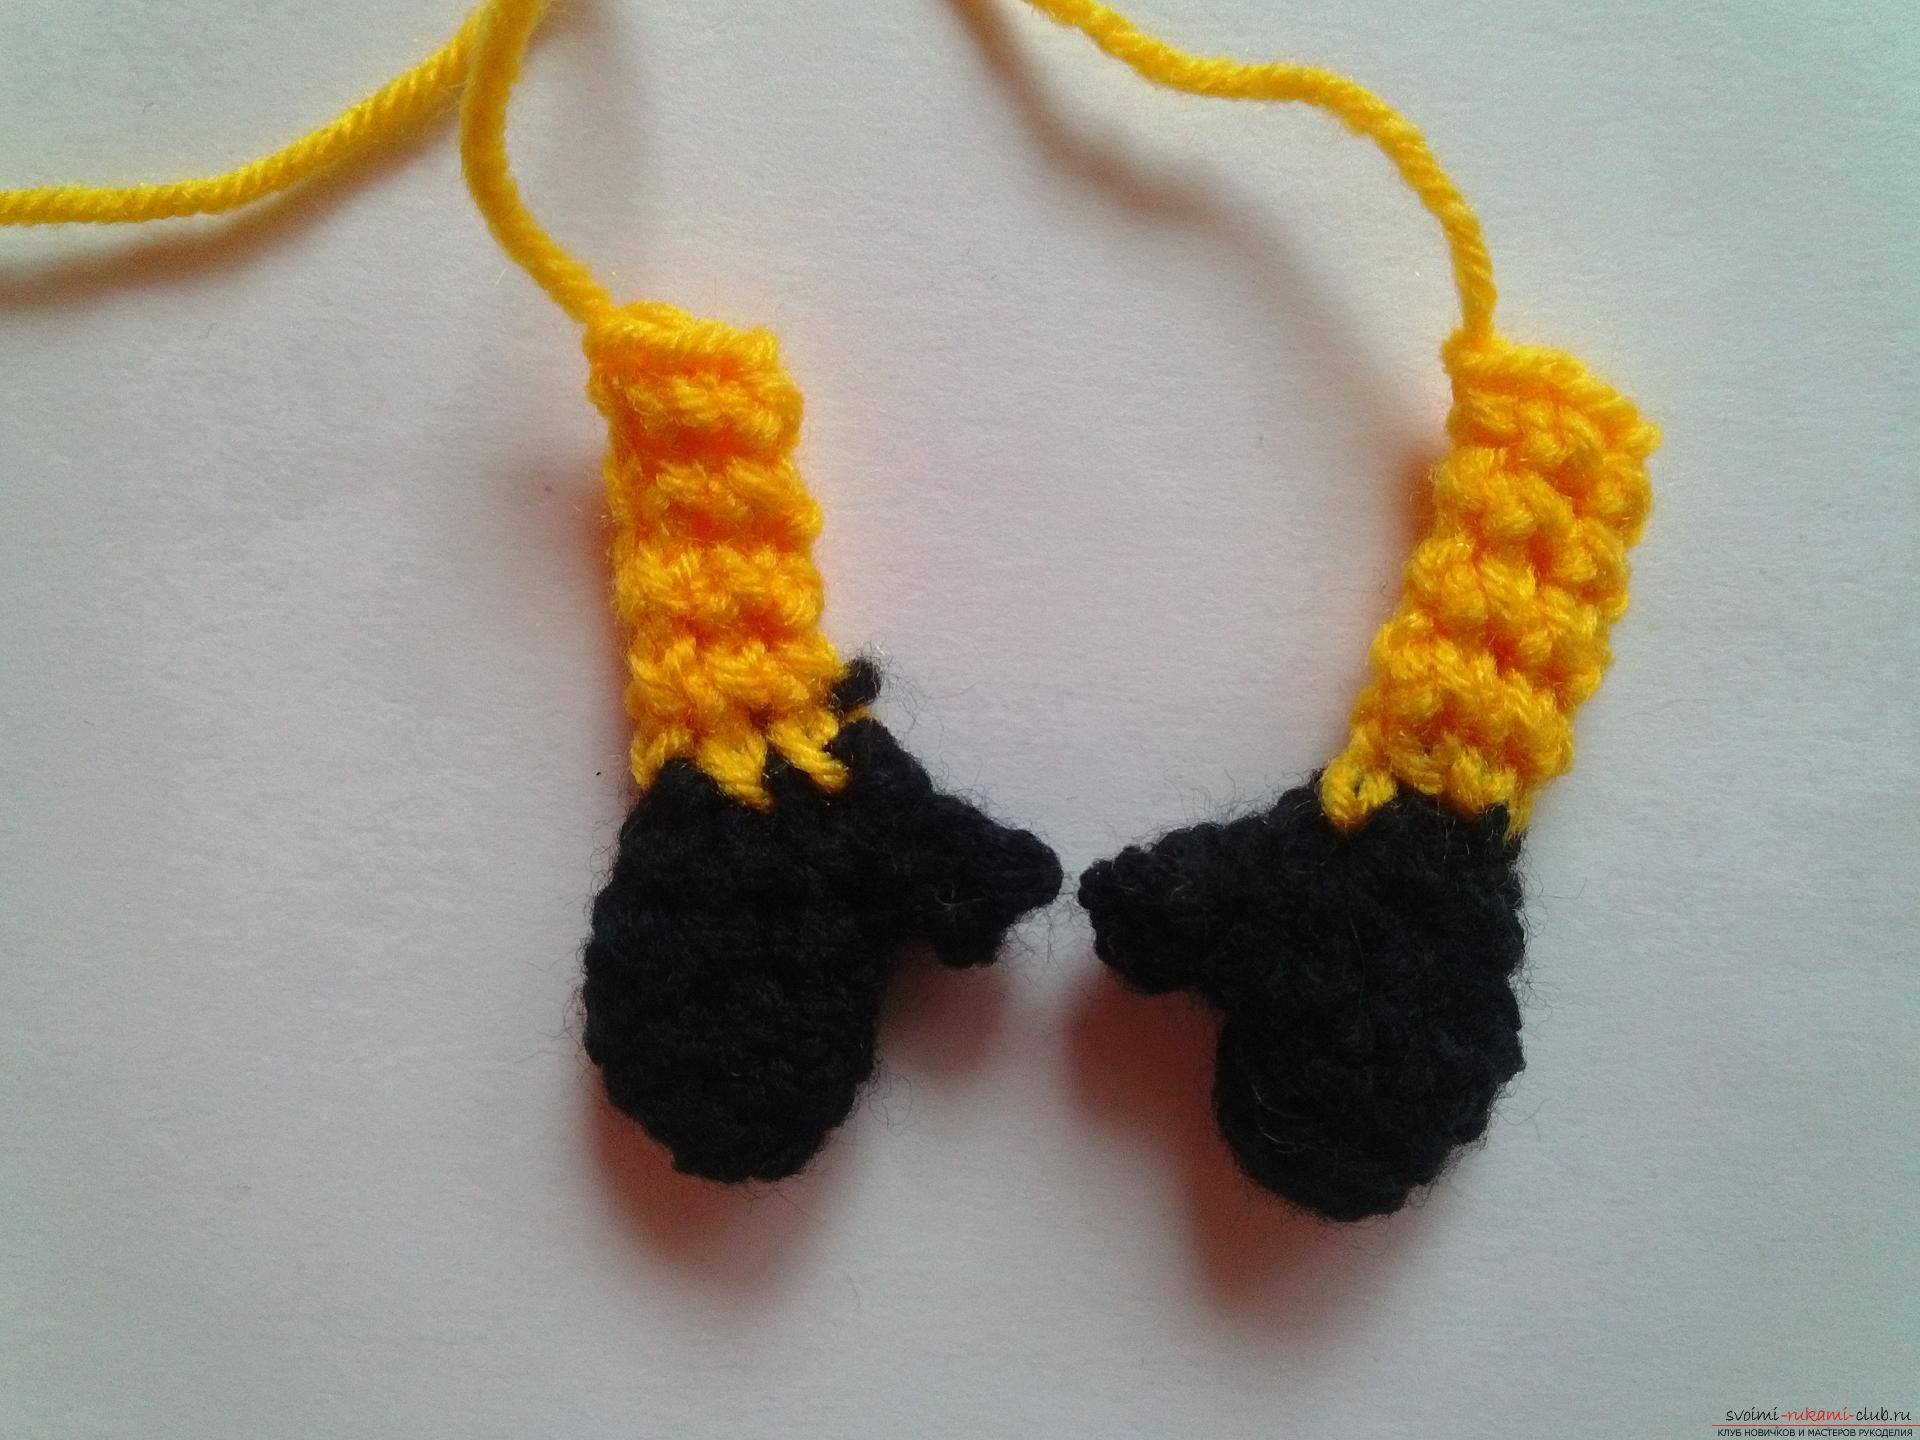 A master class with detailed photos and a step-by-step description will teach you how to crochet a minion toy. Picture №10